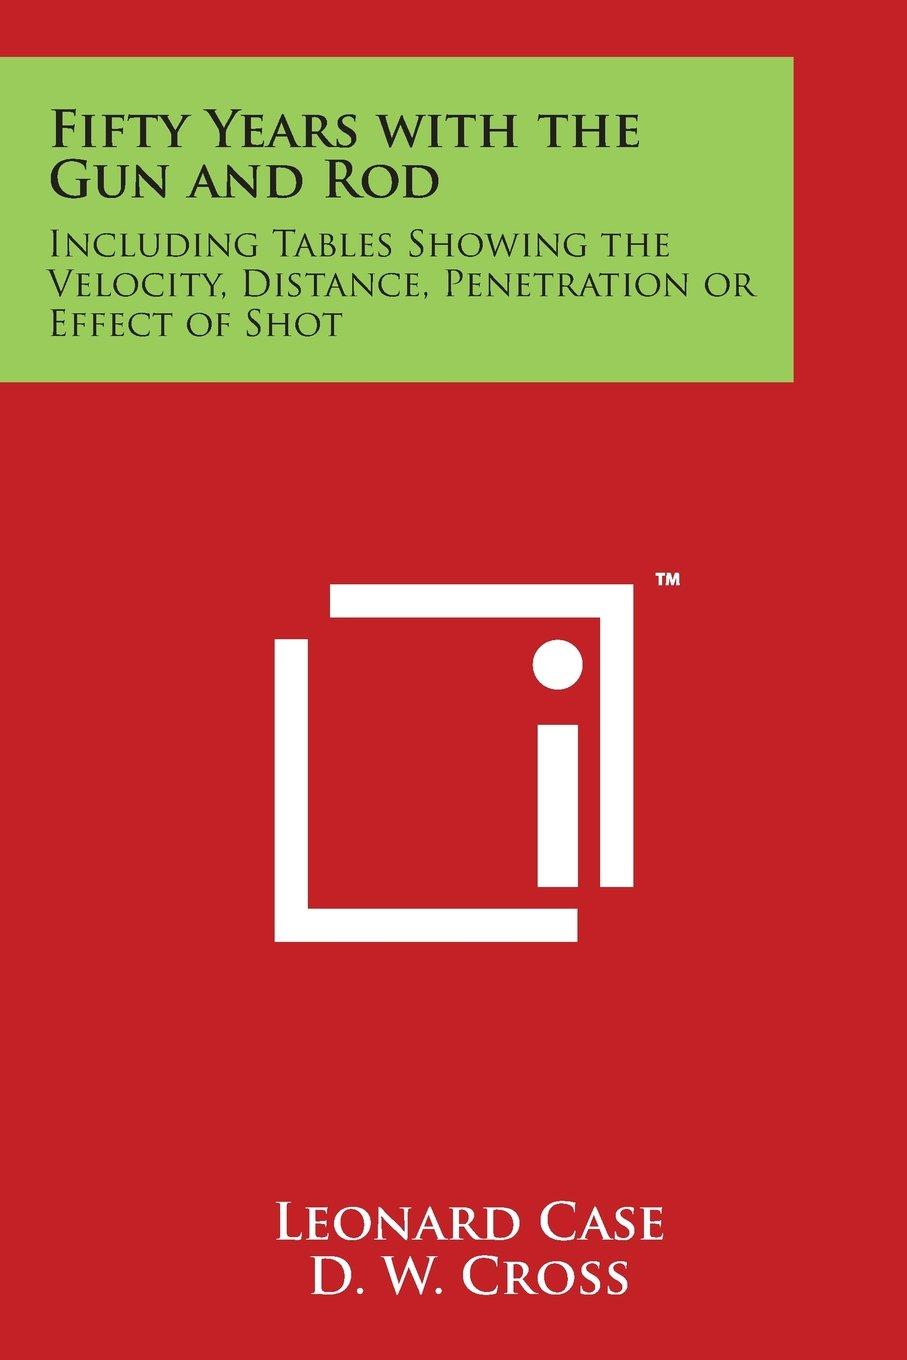 Download Fifty Years with the Gun and Rod: Including Tables Showing the Velocity, Distance, Penetration or Effect of Shot ebook